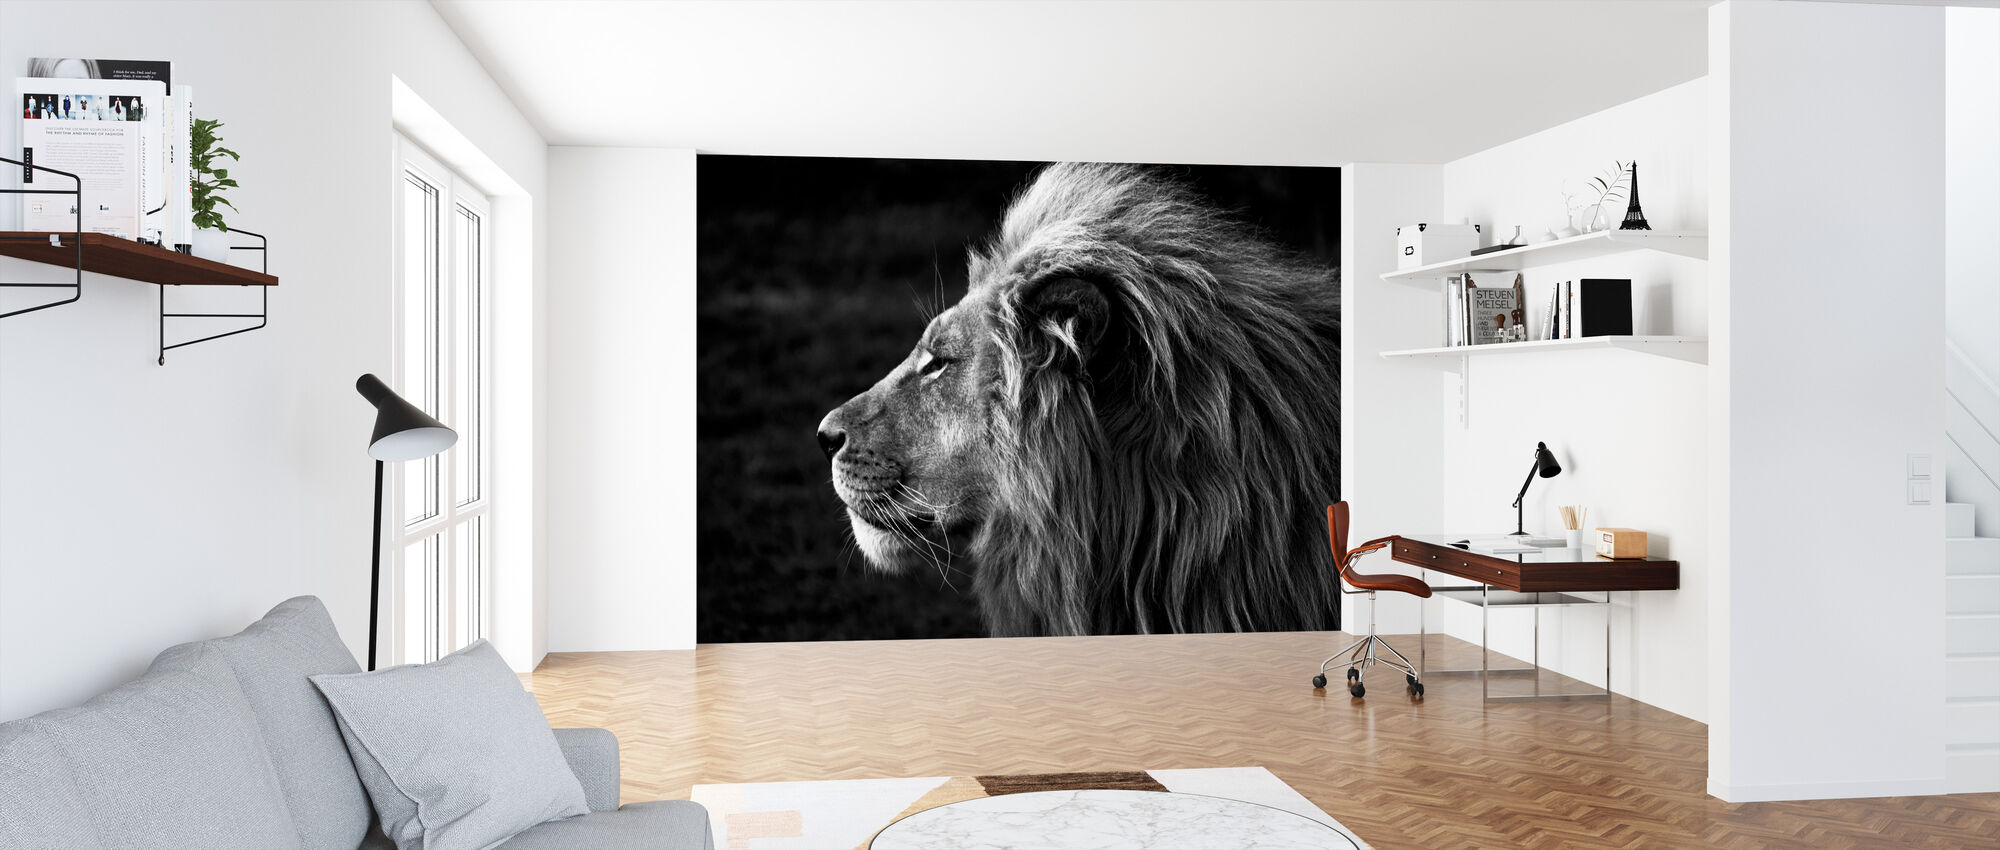 Lion - Wallpaper - Office